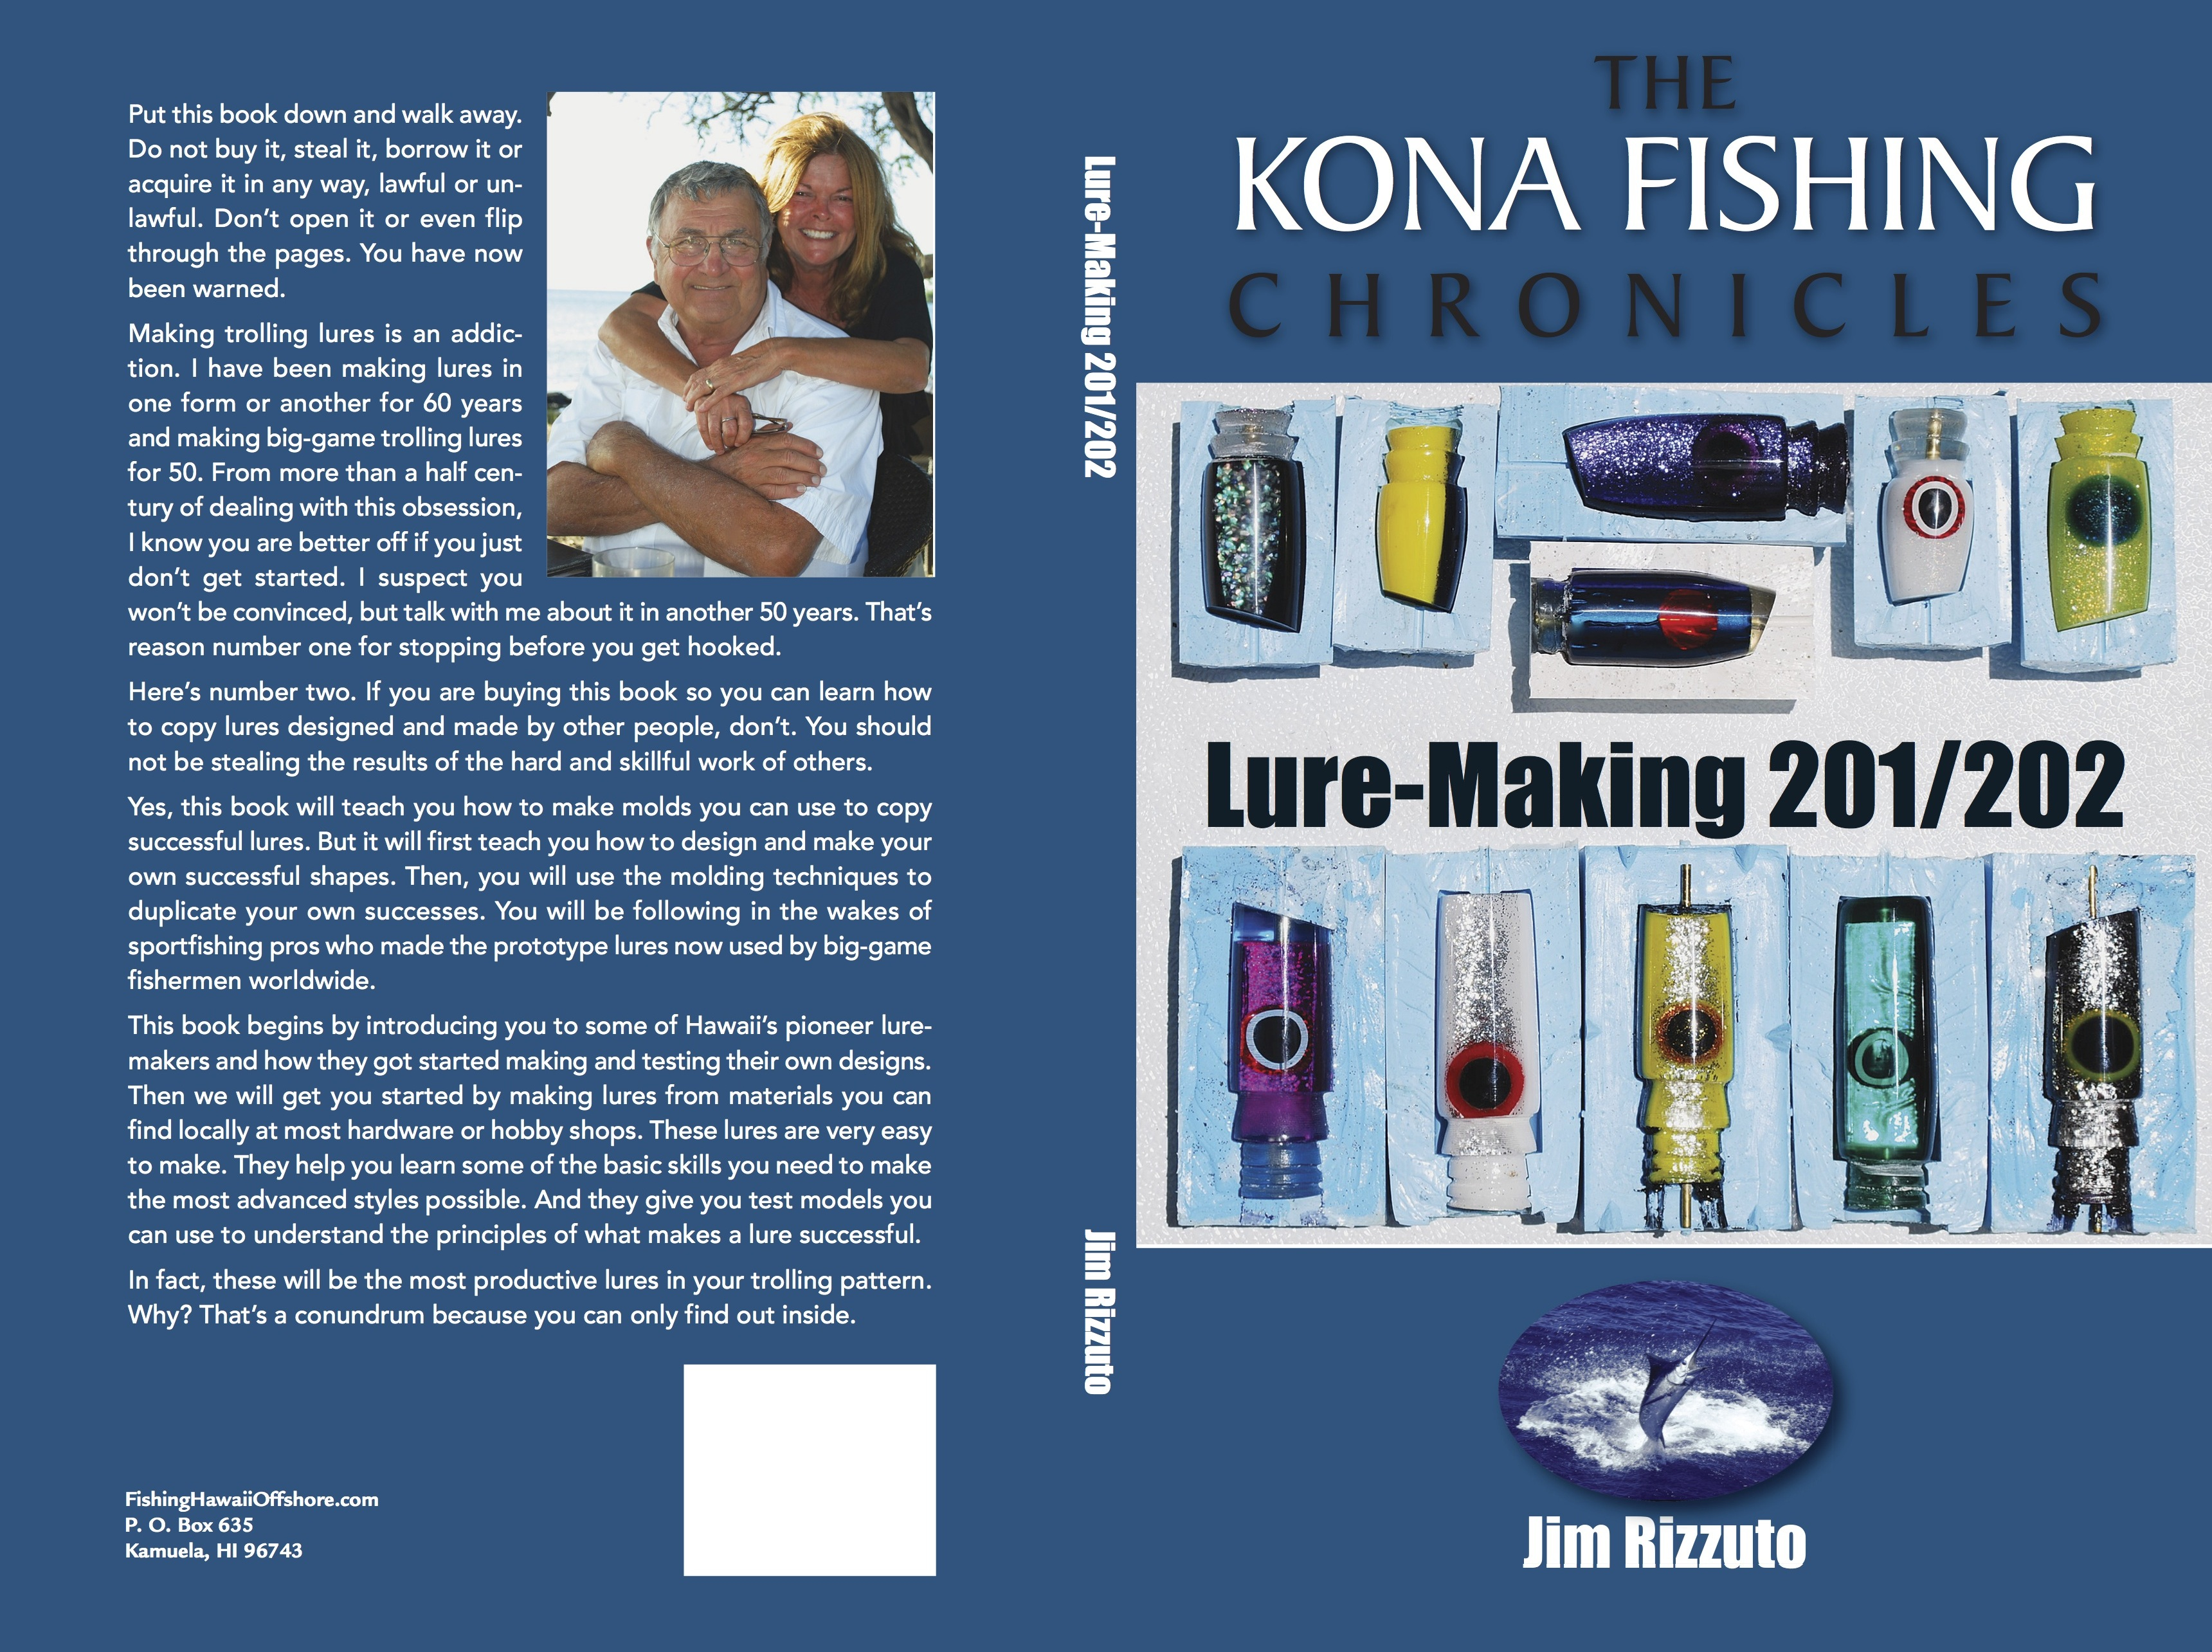 Lure making kits make your own fishing lures - Lure Making 201 202 Is The Second In The Series Of Kona Fishing Chronicles Books On How To Design Make And Use Big Game Trolling Lures